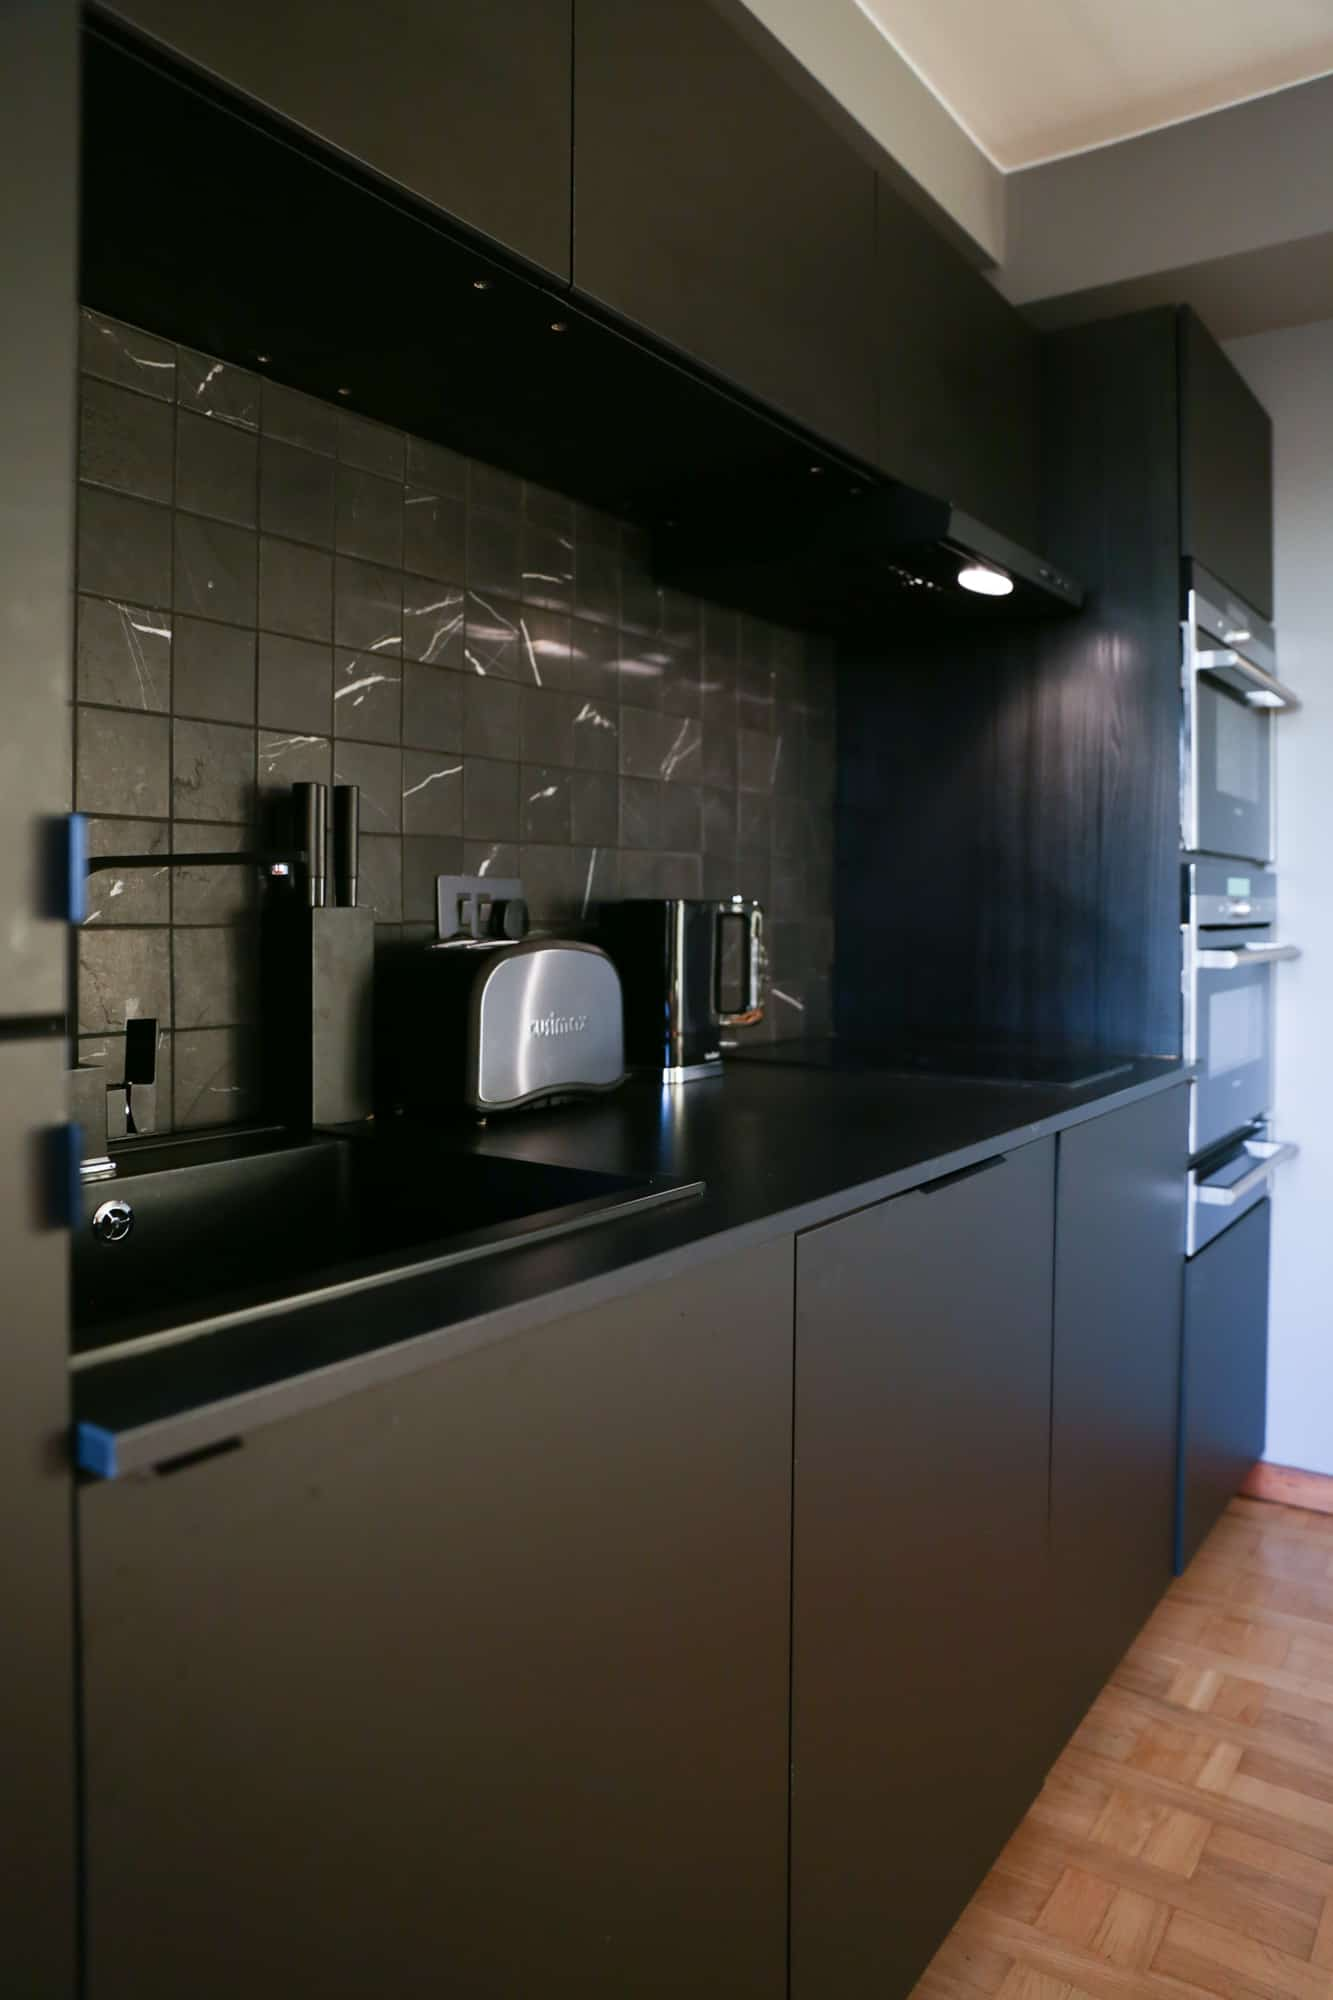 kitchen after refurbishment performed by best kitchen fitters in Glasgow